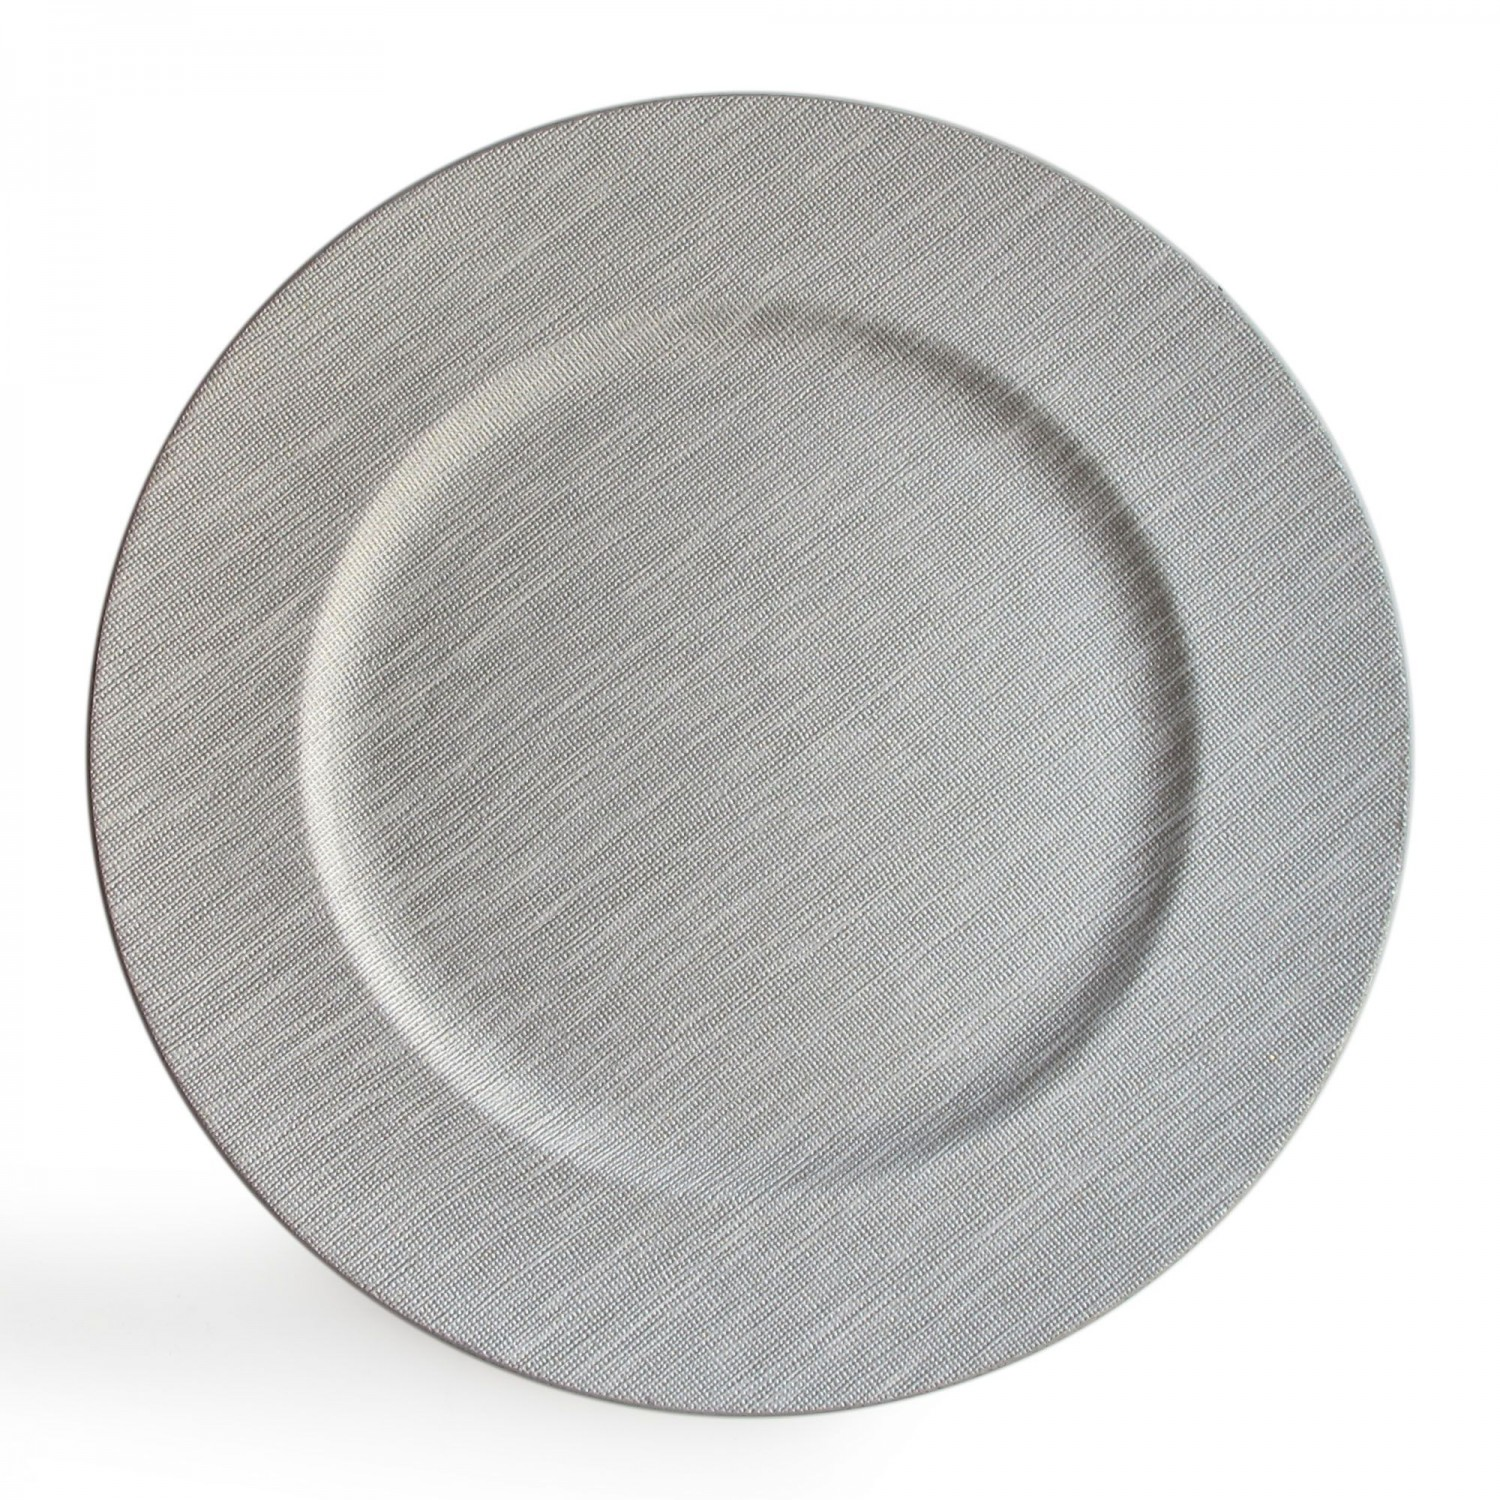 The Jay Companies 1320381 Round Textured Cool Gray Charger Plate 14""